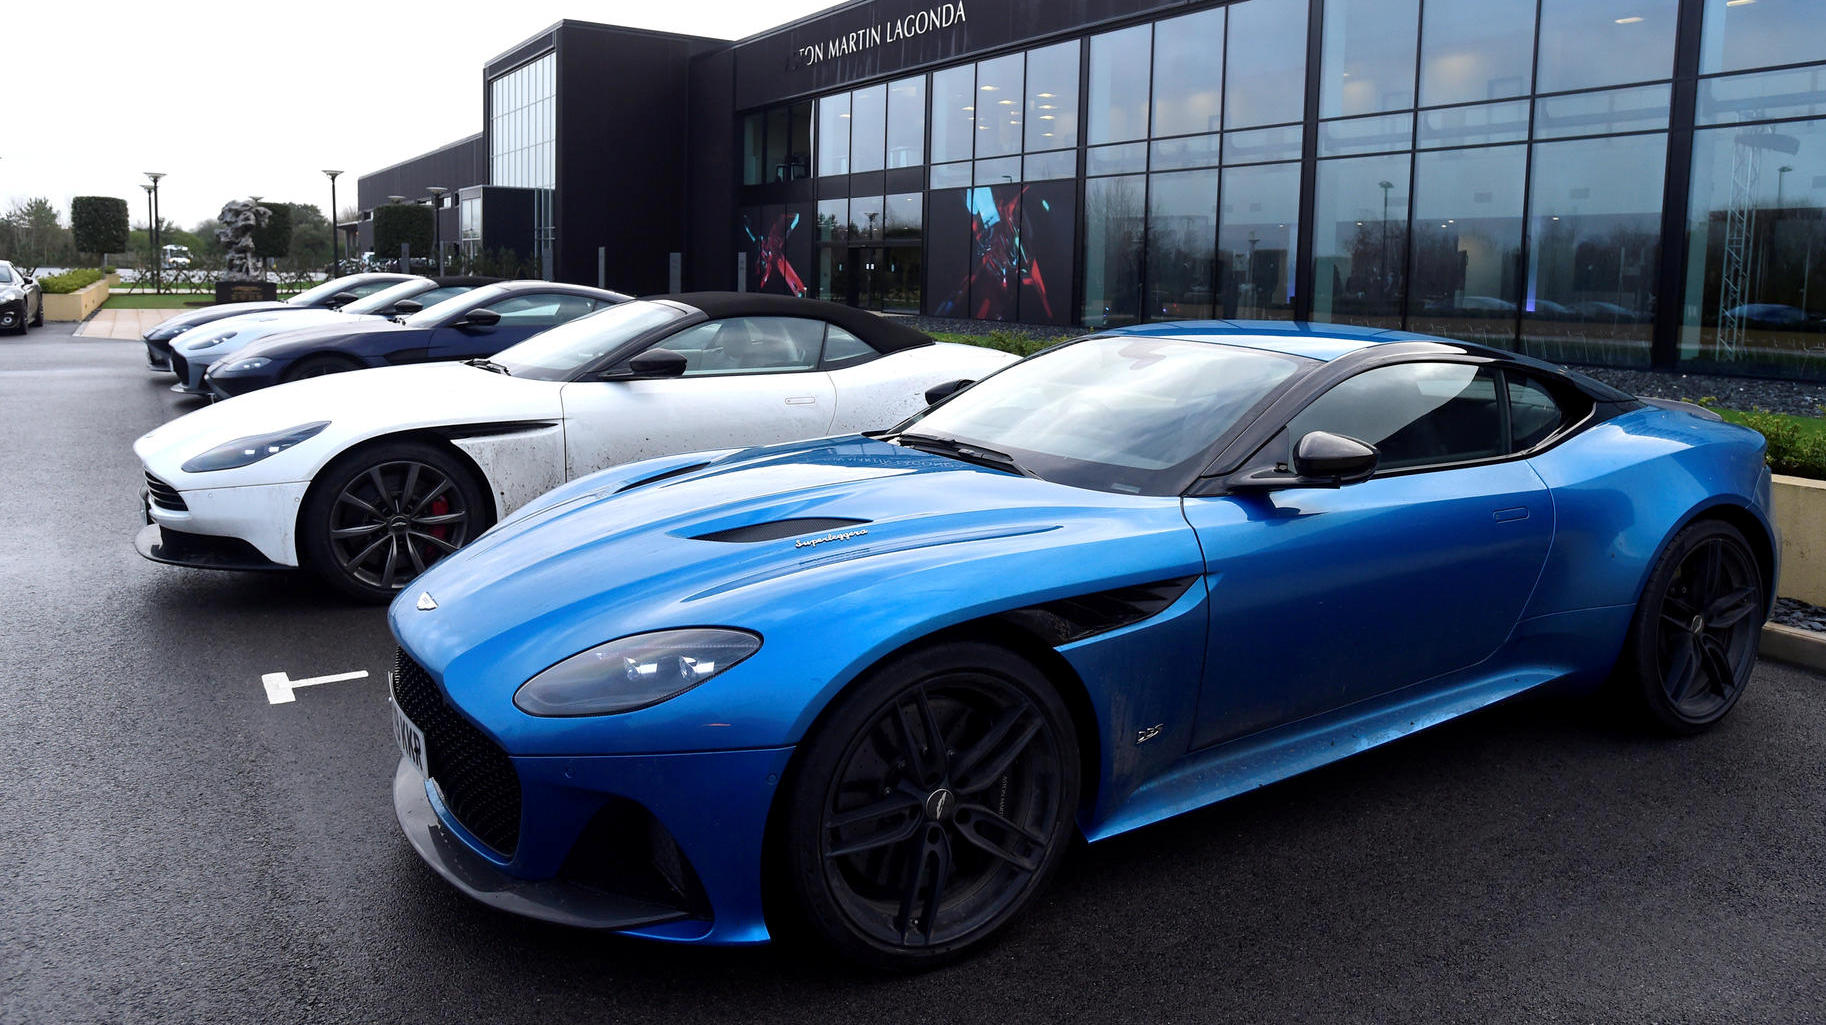 Mercedes Benz Wants To Save The Luxury Brand Aston Martin Share Sharply Increased Personal Financial